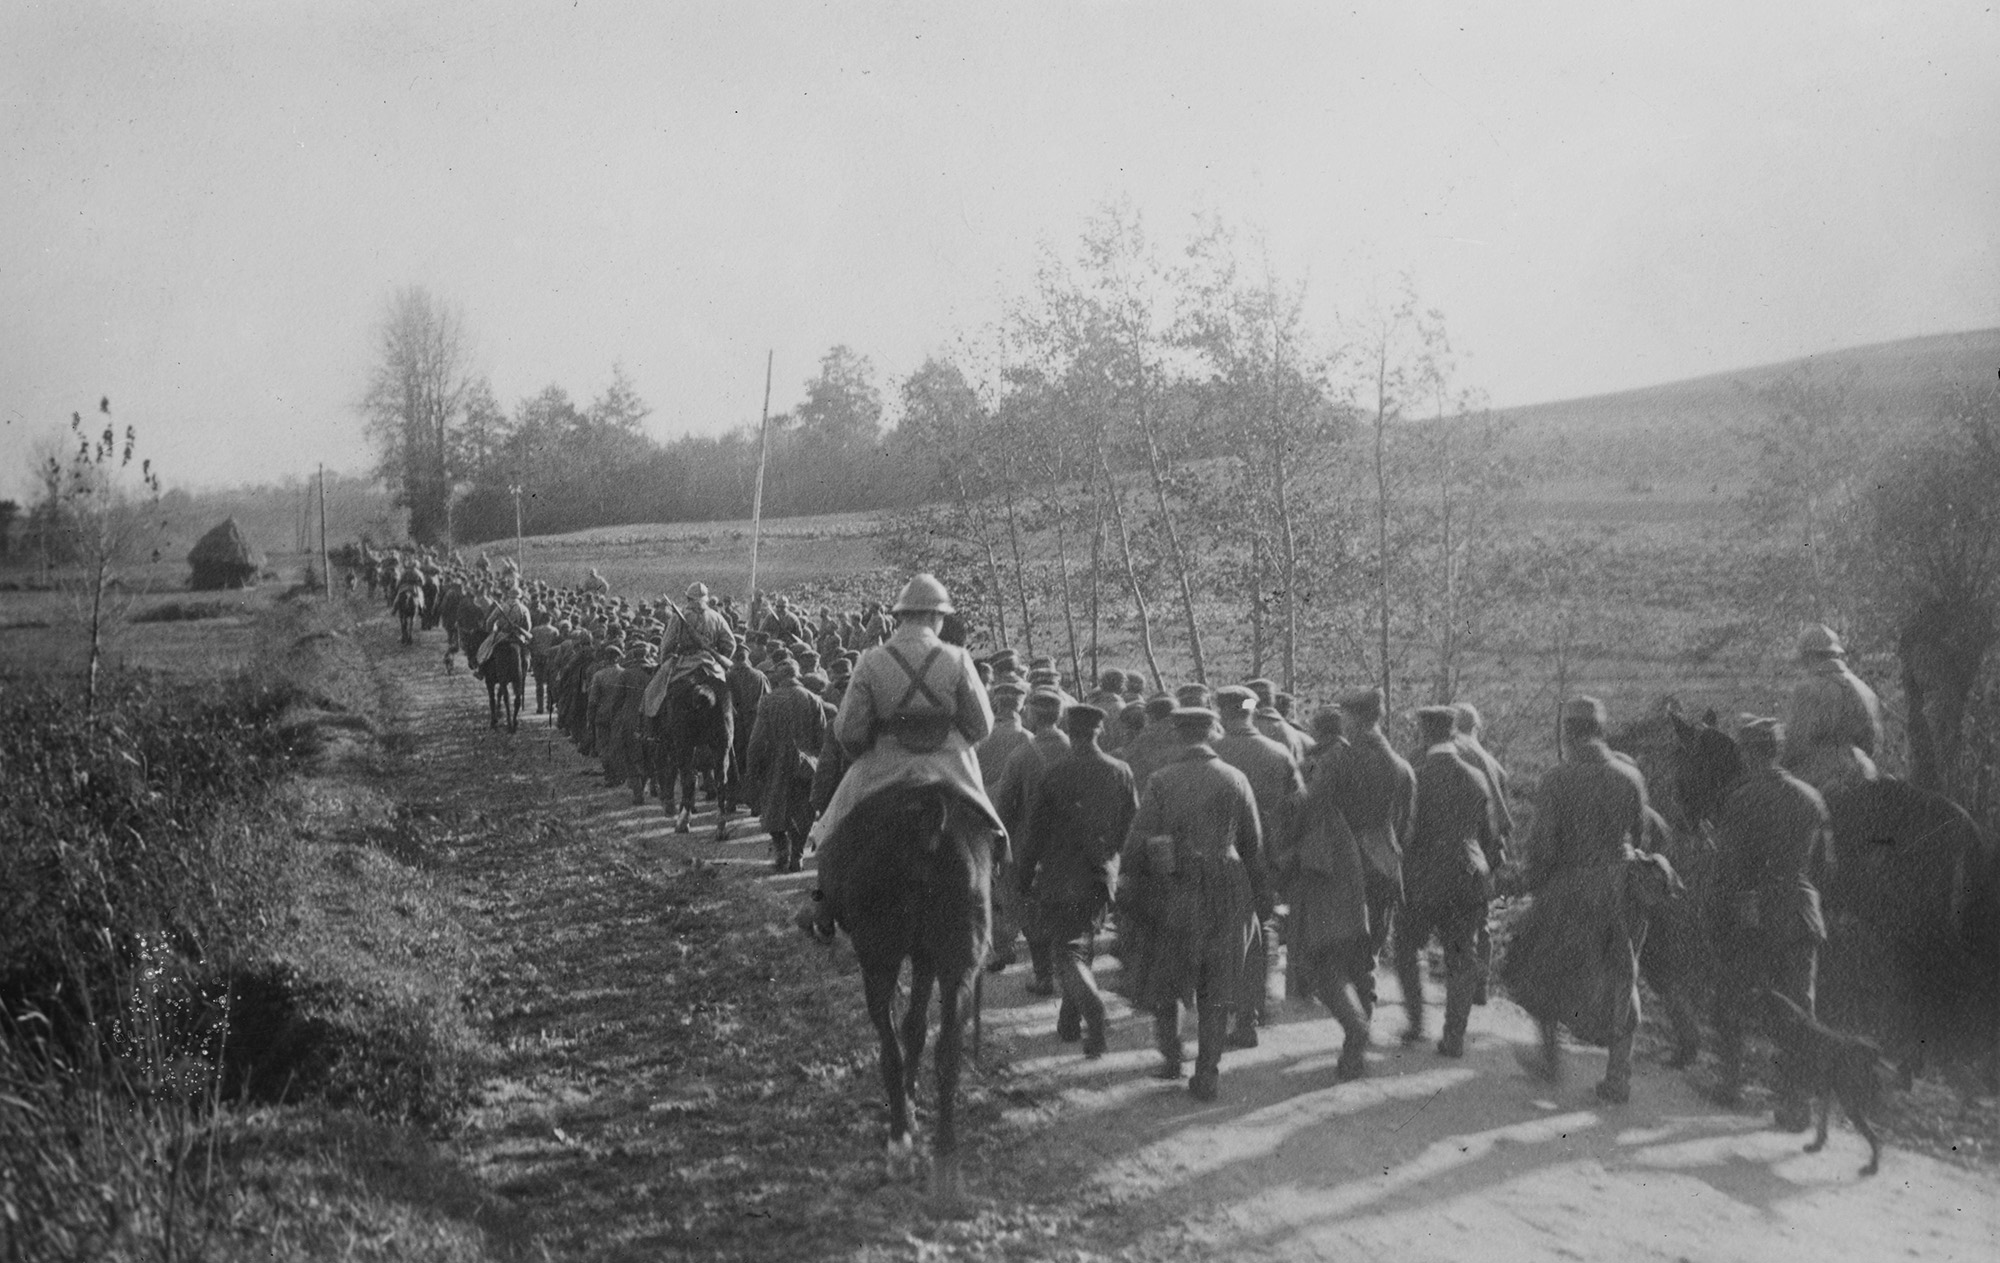 German prisoners being escorted to the rear by French cavalry.